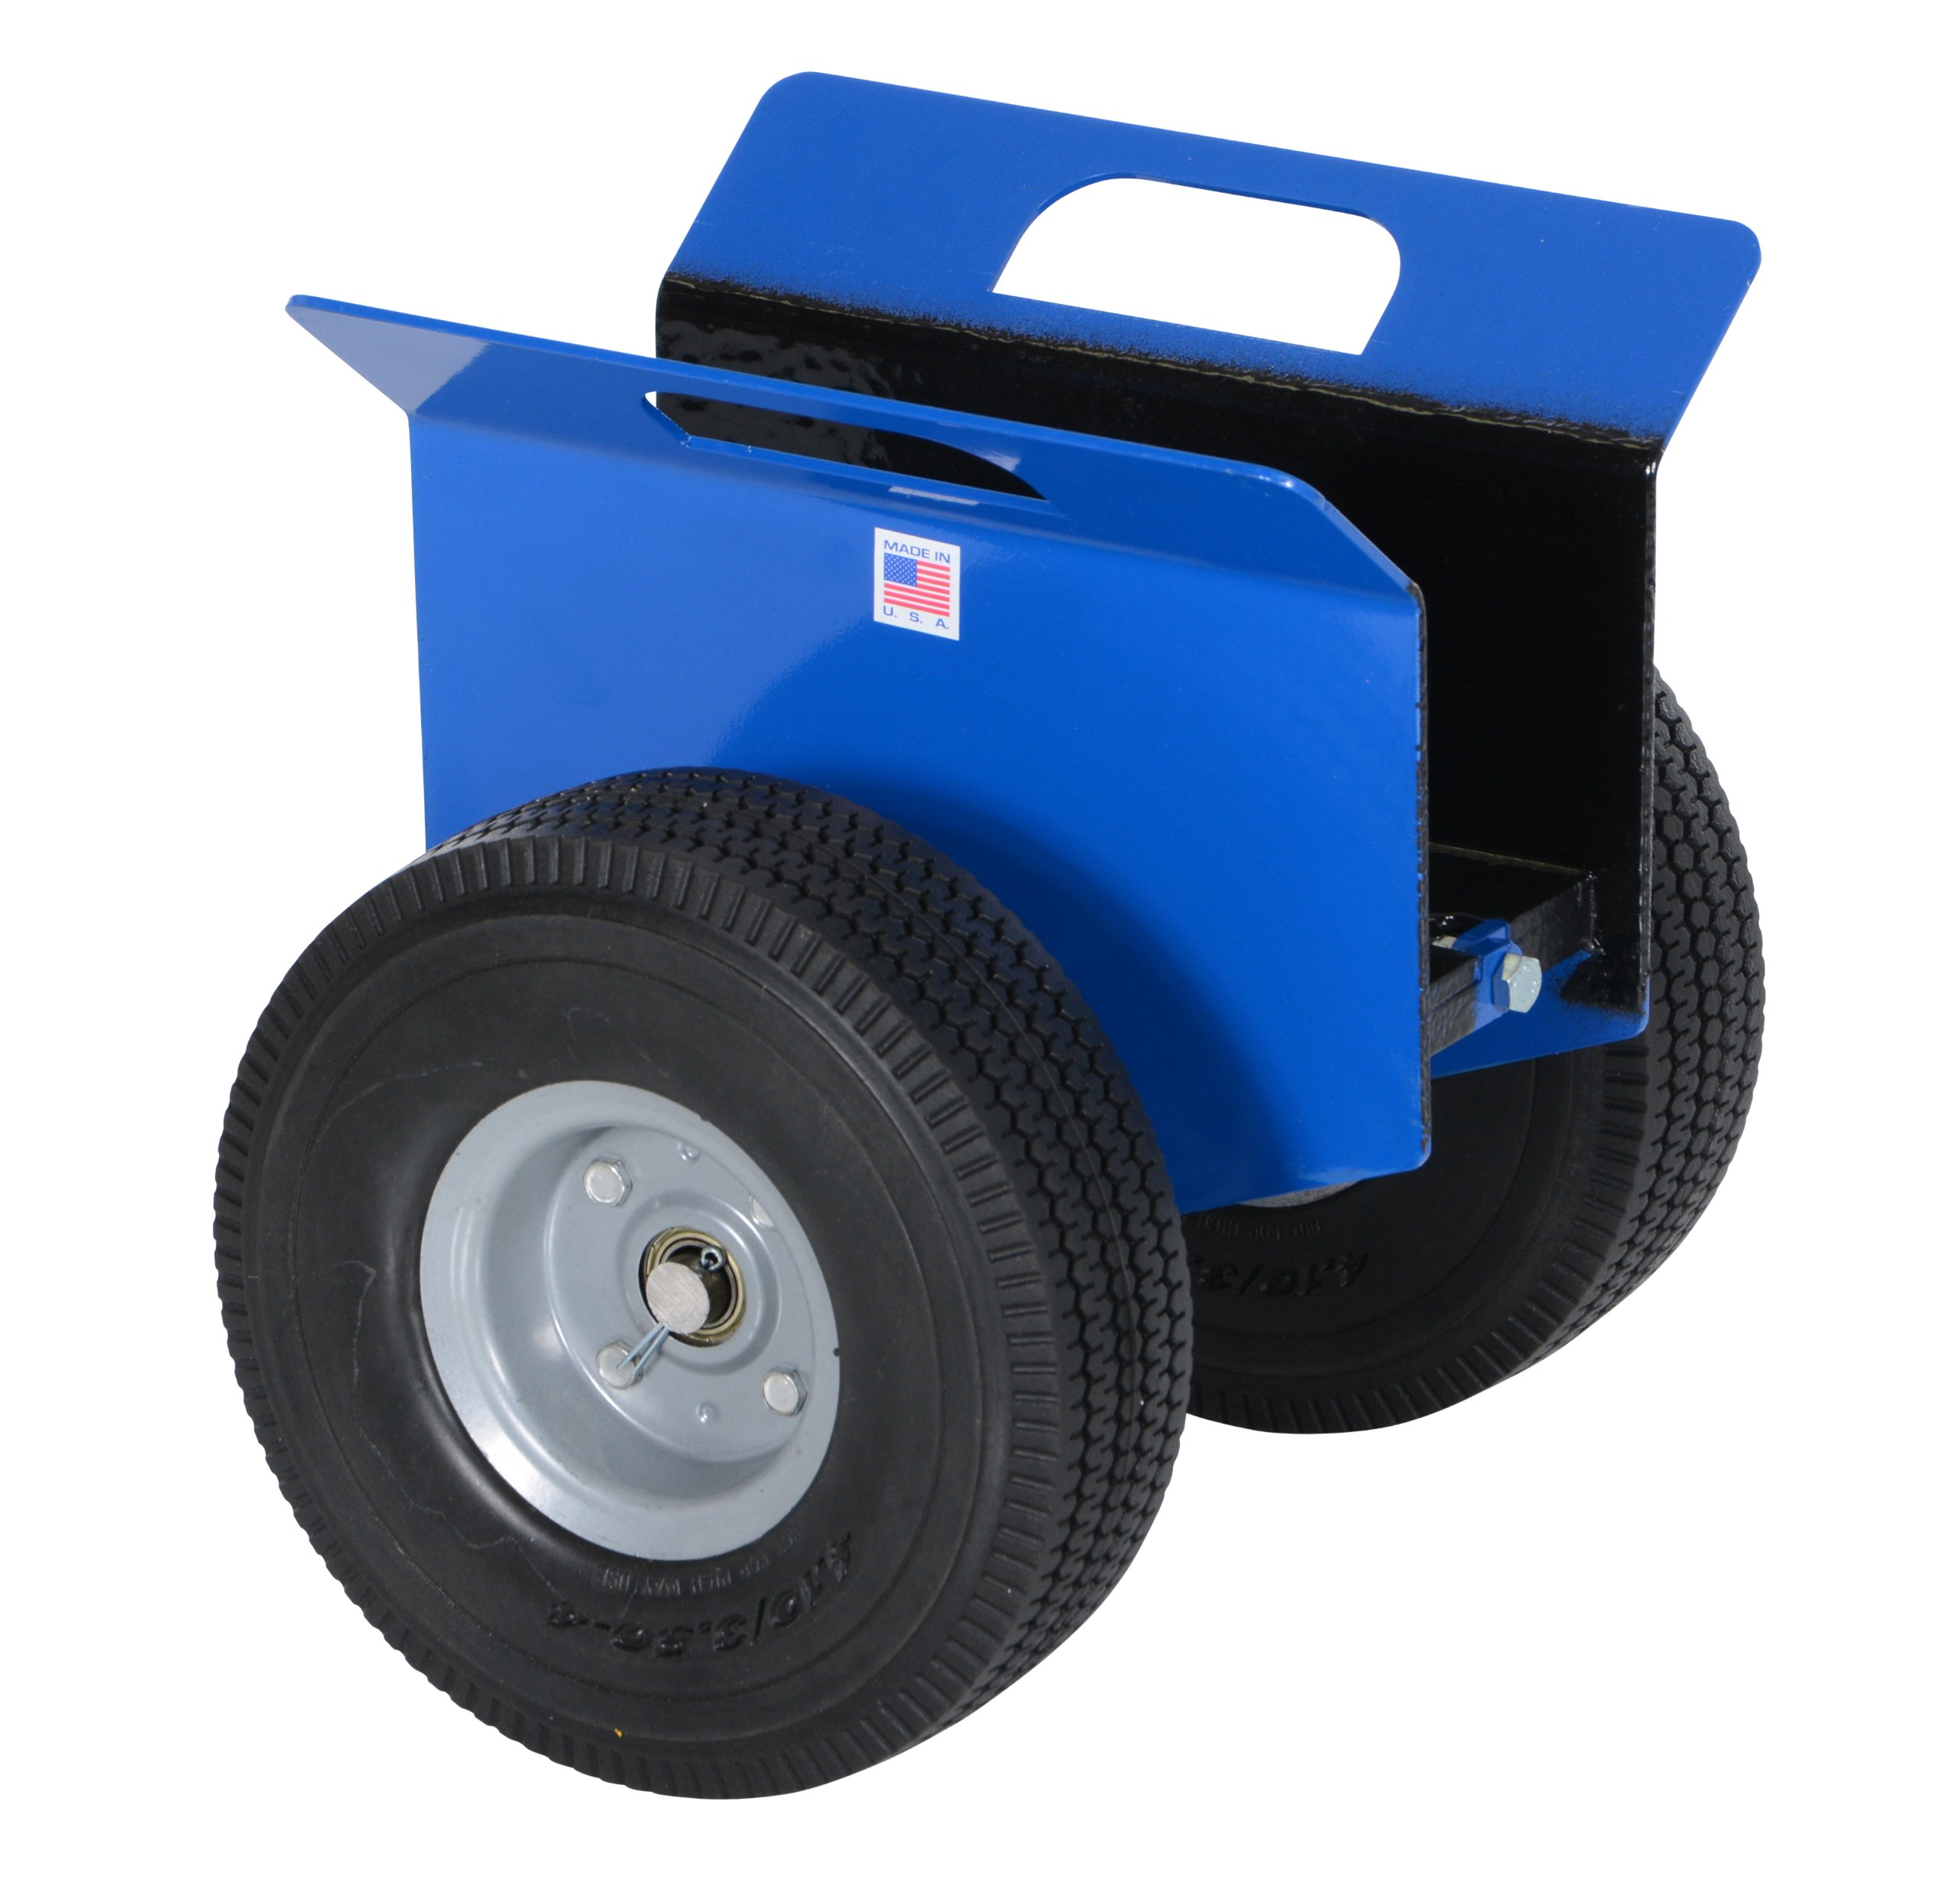 Vestil PLDL-HD-4 Steel Plate and Slab Dolly with Foam Wheels, 500 lbs Load Capacity, 14-1/4'' Height, 12'' Length x 13-5/8'' Width